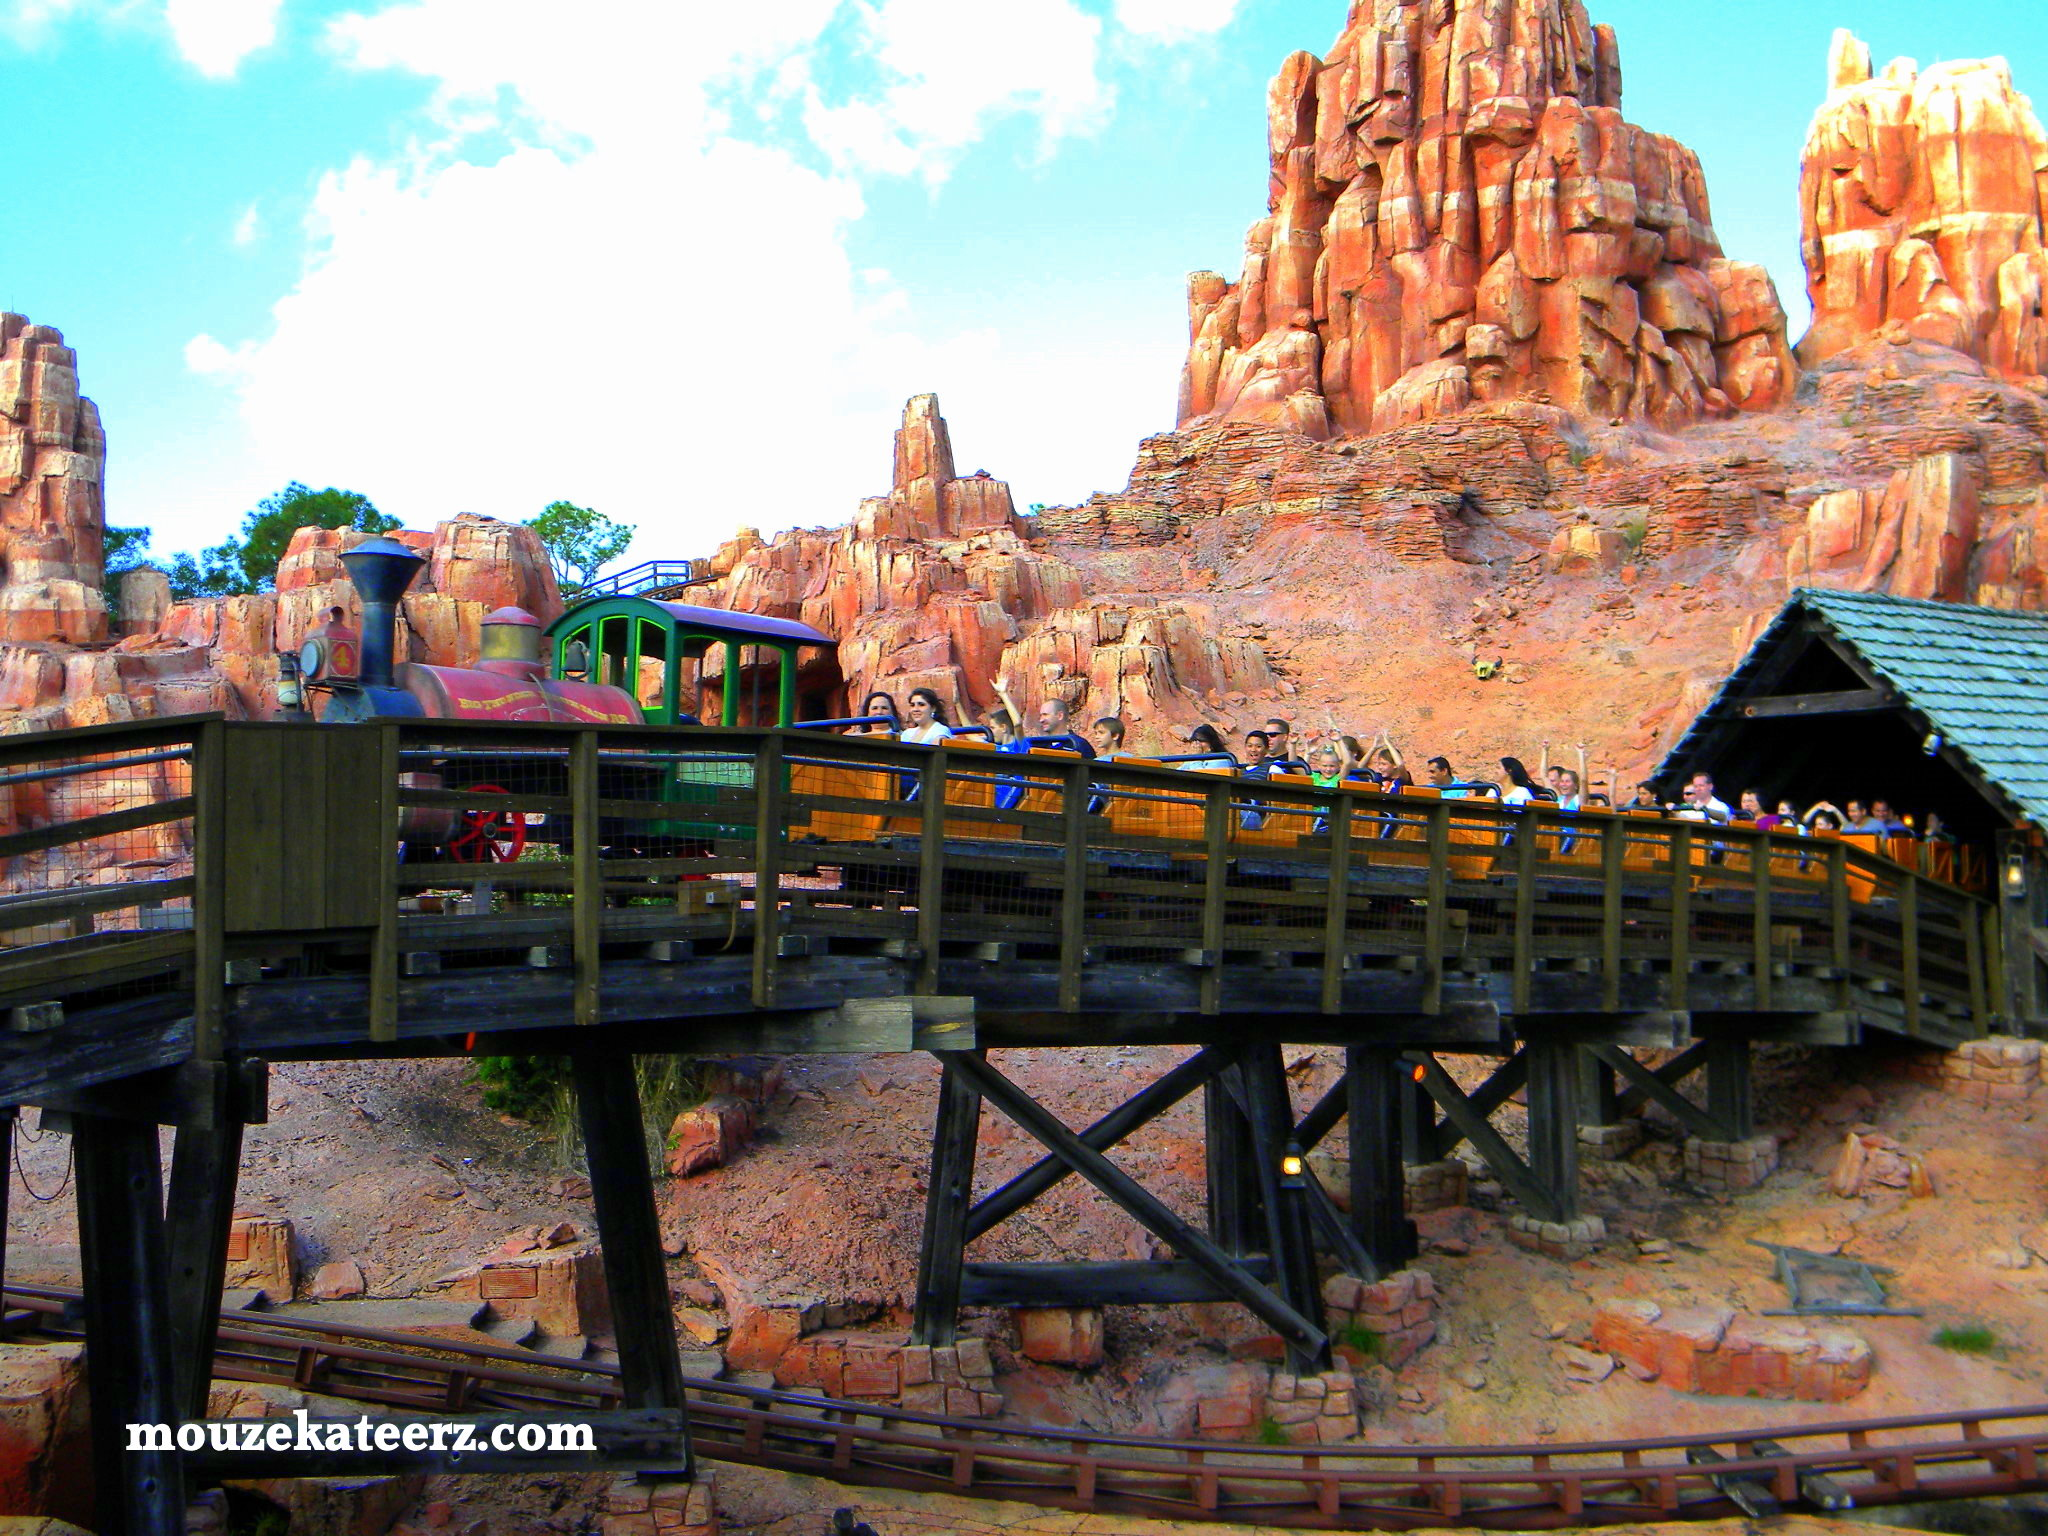 big thunder mountain railroad - photo #13